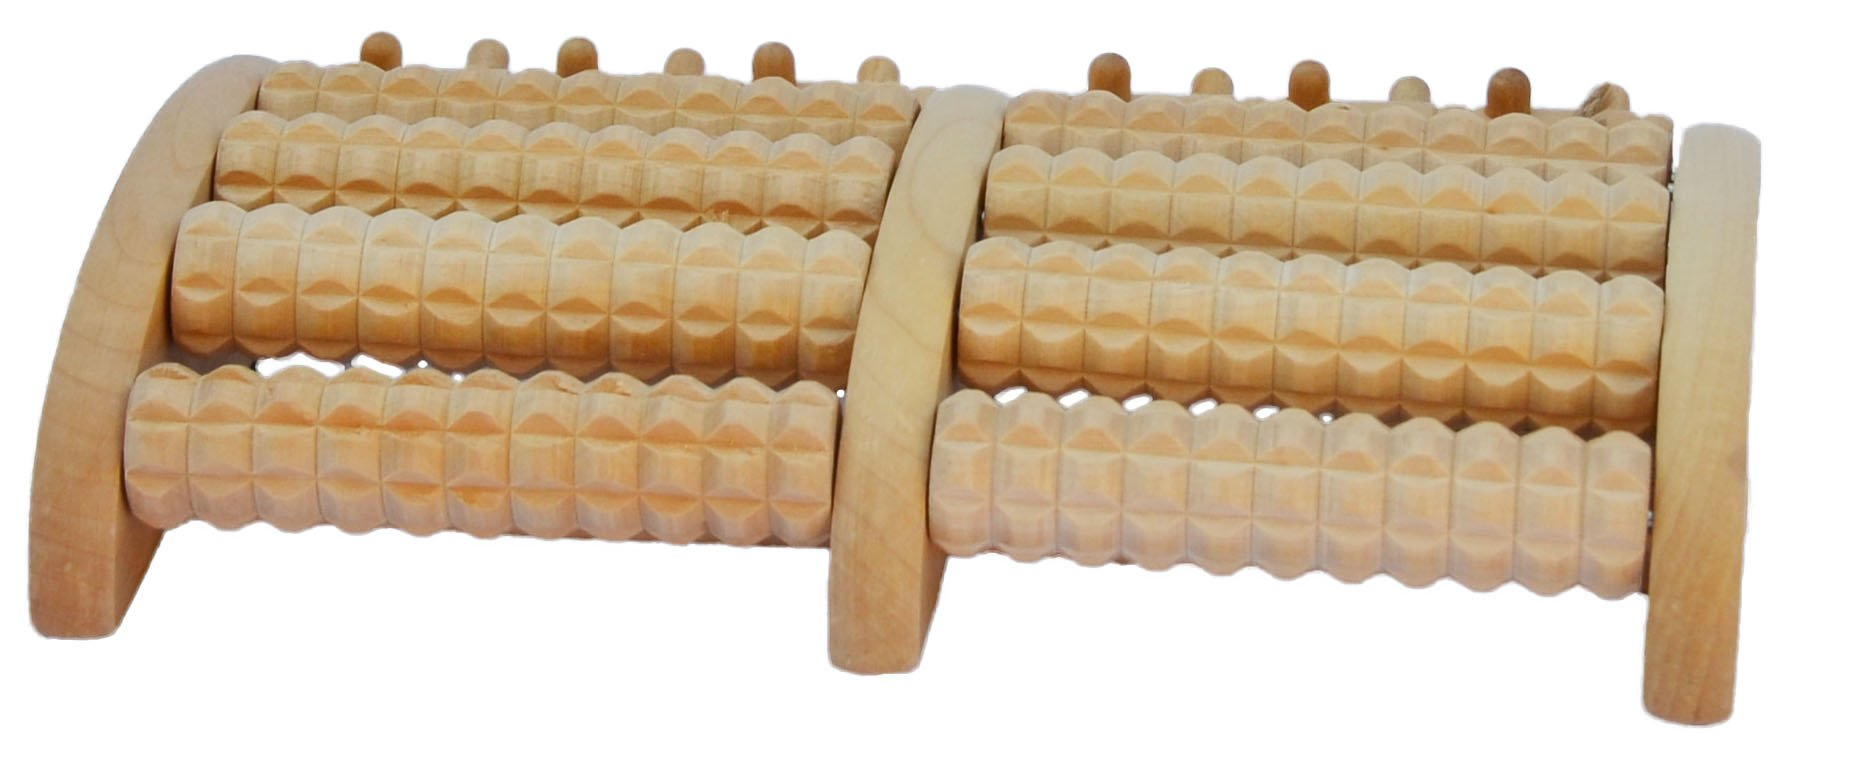 5-Roll Wooden Foot Massage Roller Plus 3 FREE bags of Foot Soak & Bath Herbs samples $10 Value by Shine Wellness Inc (Image #2)